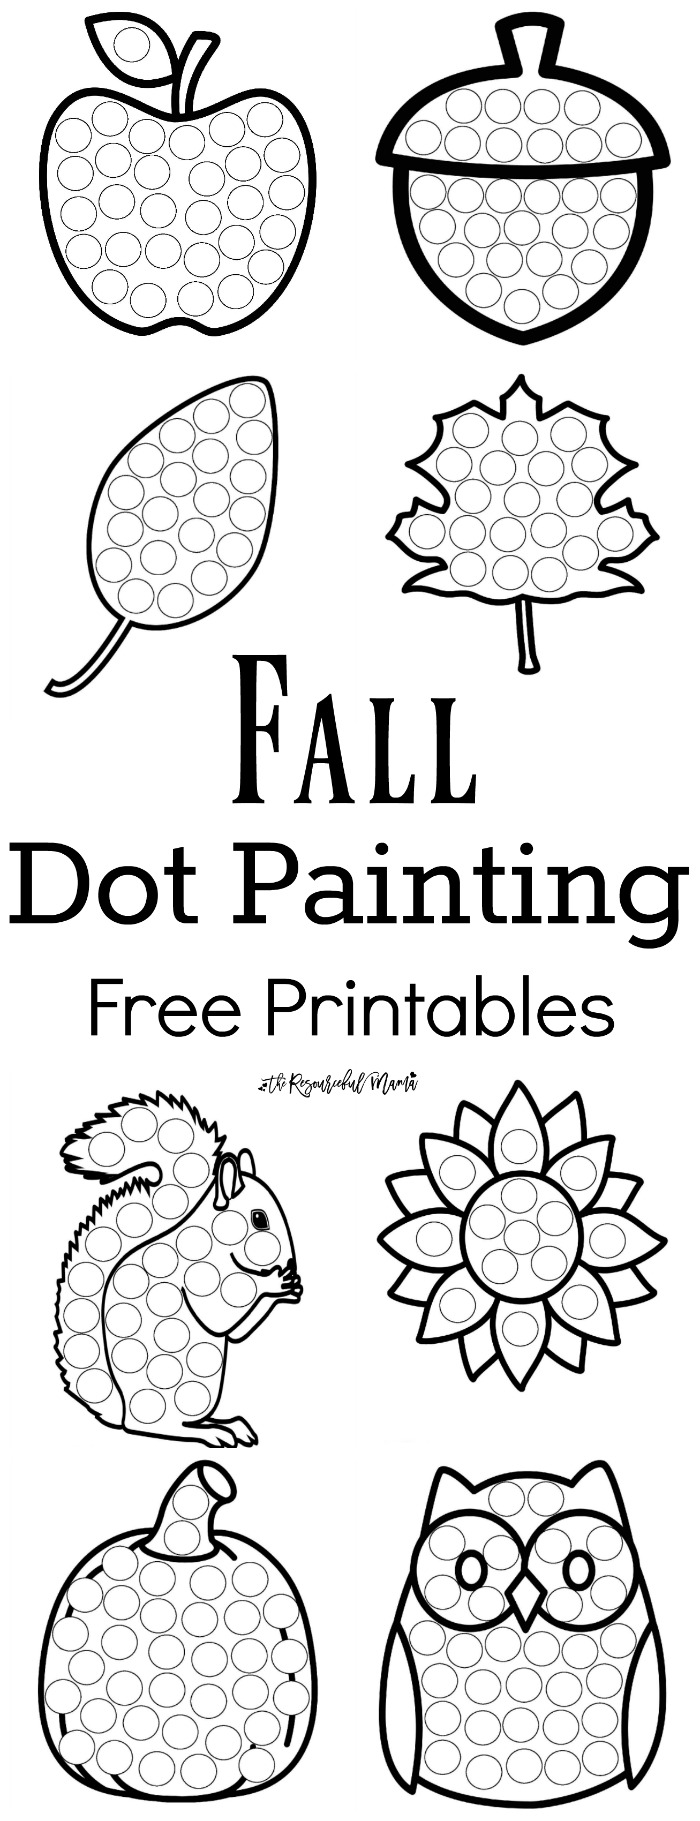 worksheet Fall Worksheets For Preschool fall dot painting free printables the resourceful mama these worksheets are a fun mess activity for young kids that